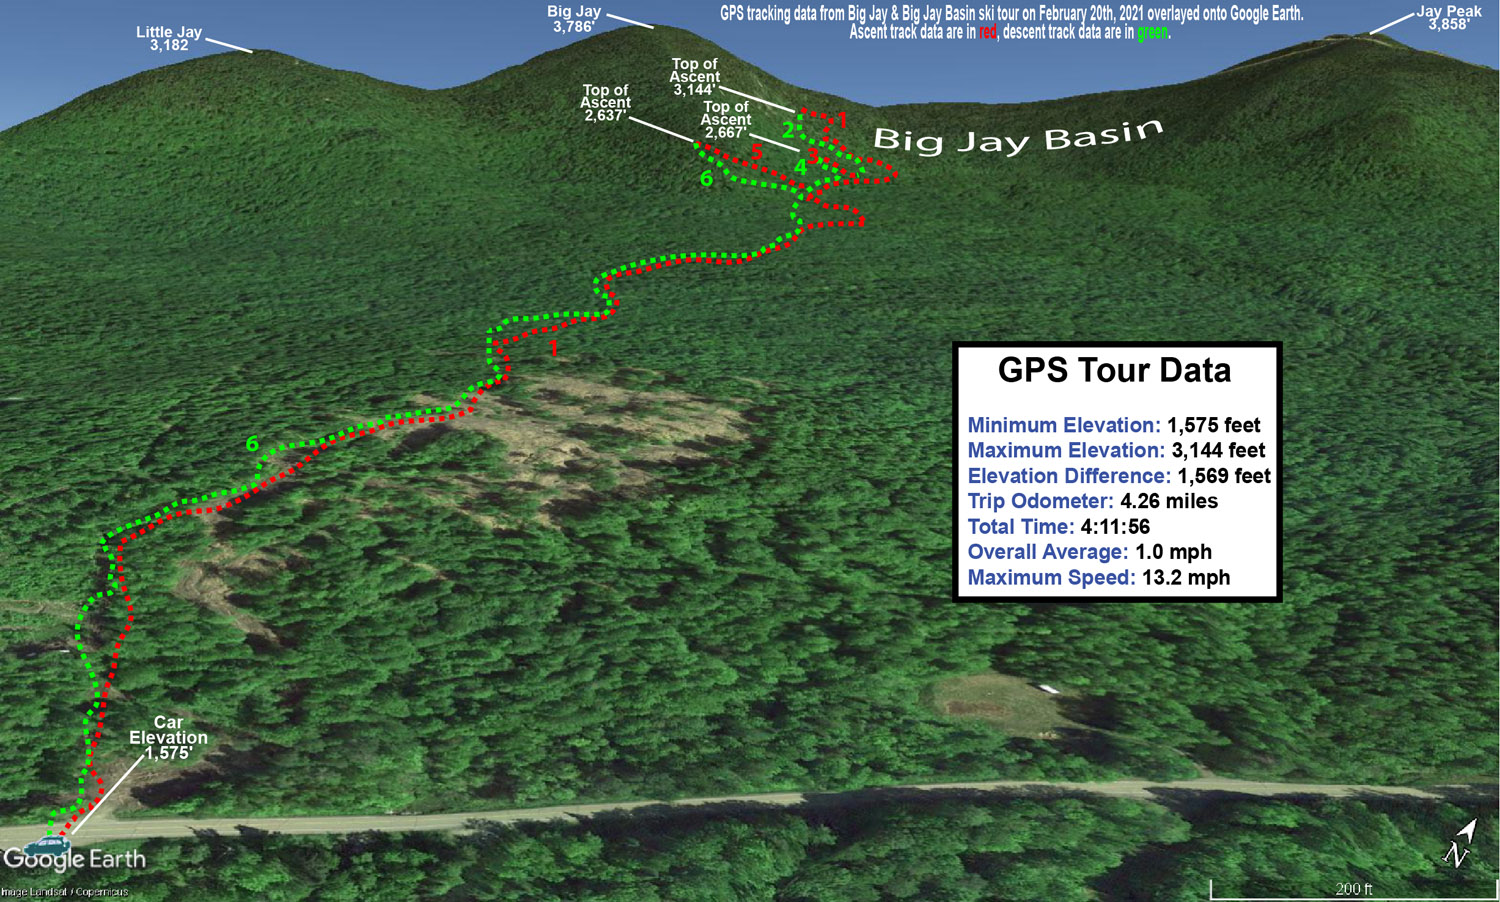 A Google Earth map with GPS tracking data for a ski tour in the Jay Peak backcountry in Vermont on February 20th, 2021